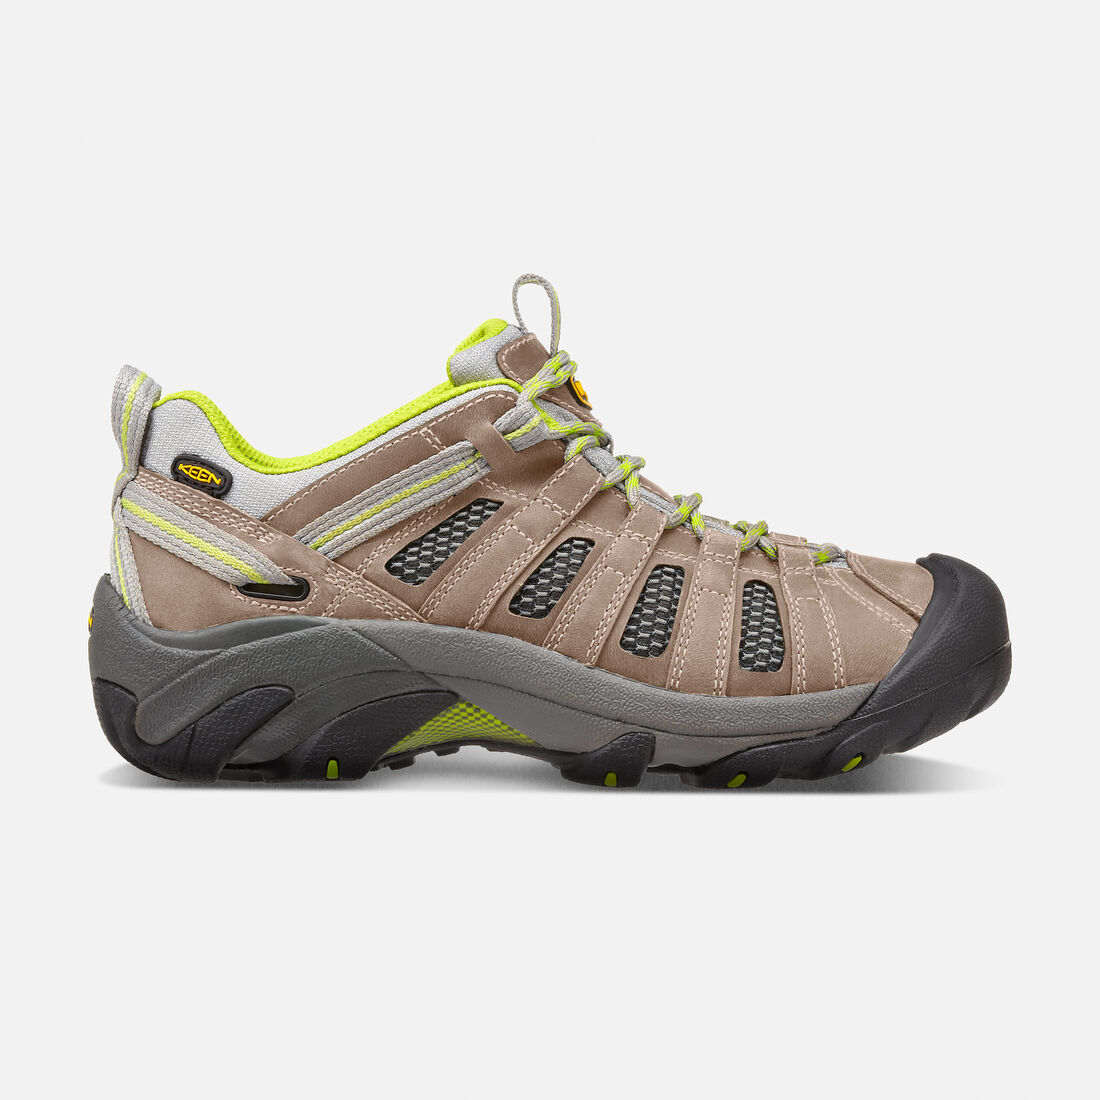 ab6776a4508 Keen Women's Hiking Shoes Voyageur,